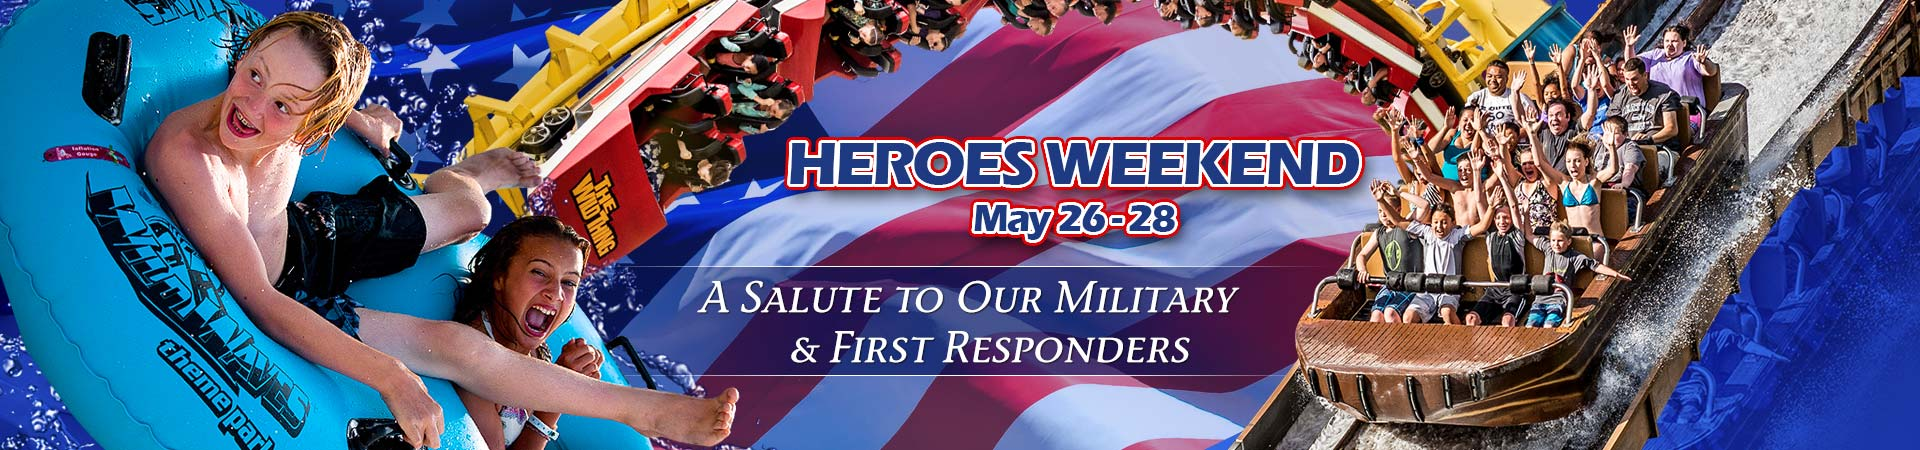 Wild Waves - Free Admission for Military & First Responders